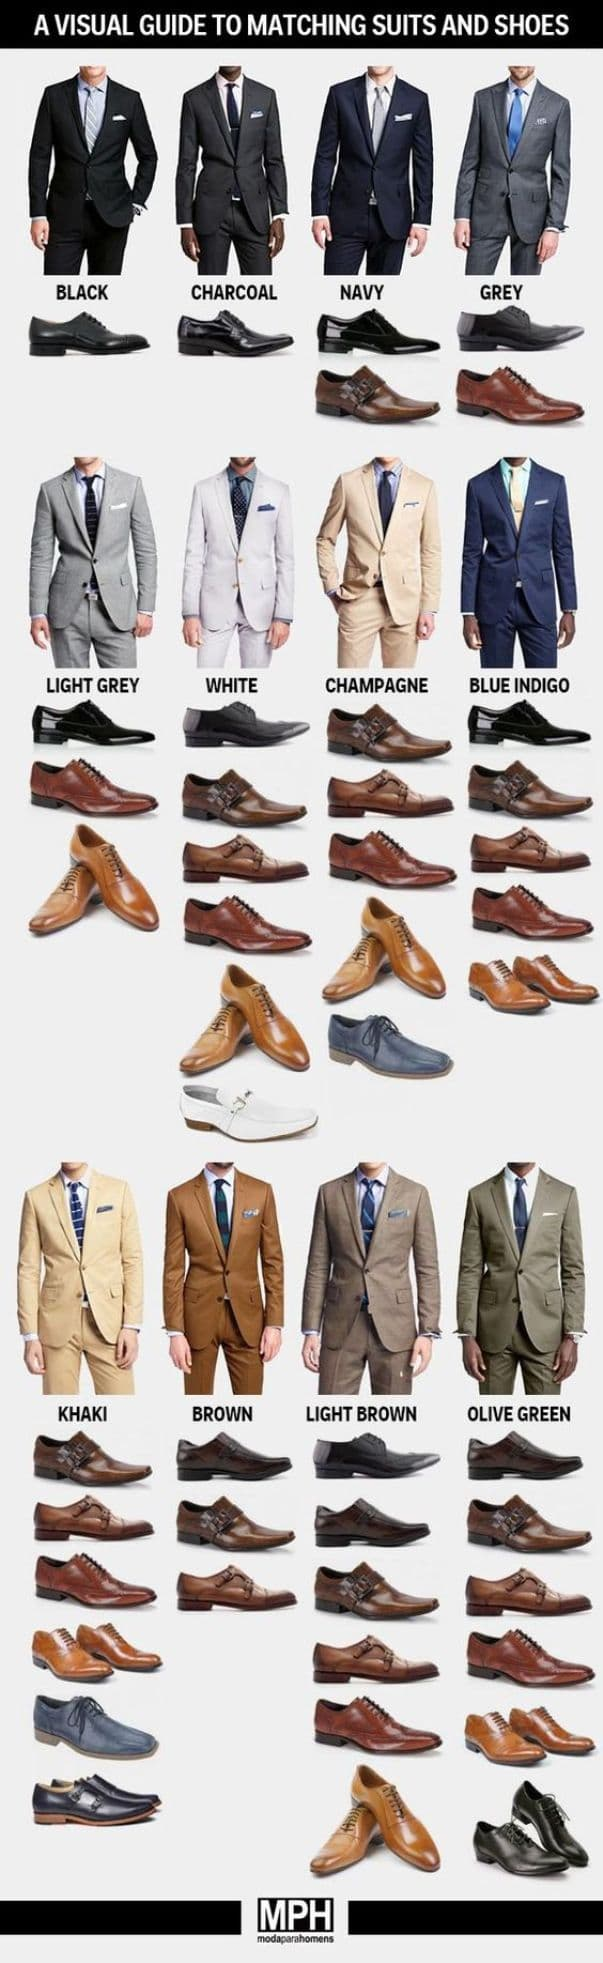 Matching Suits And Dress Shoe Colors